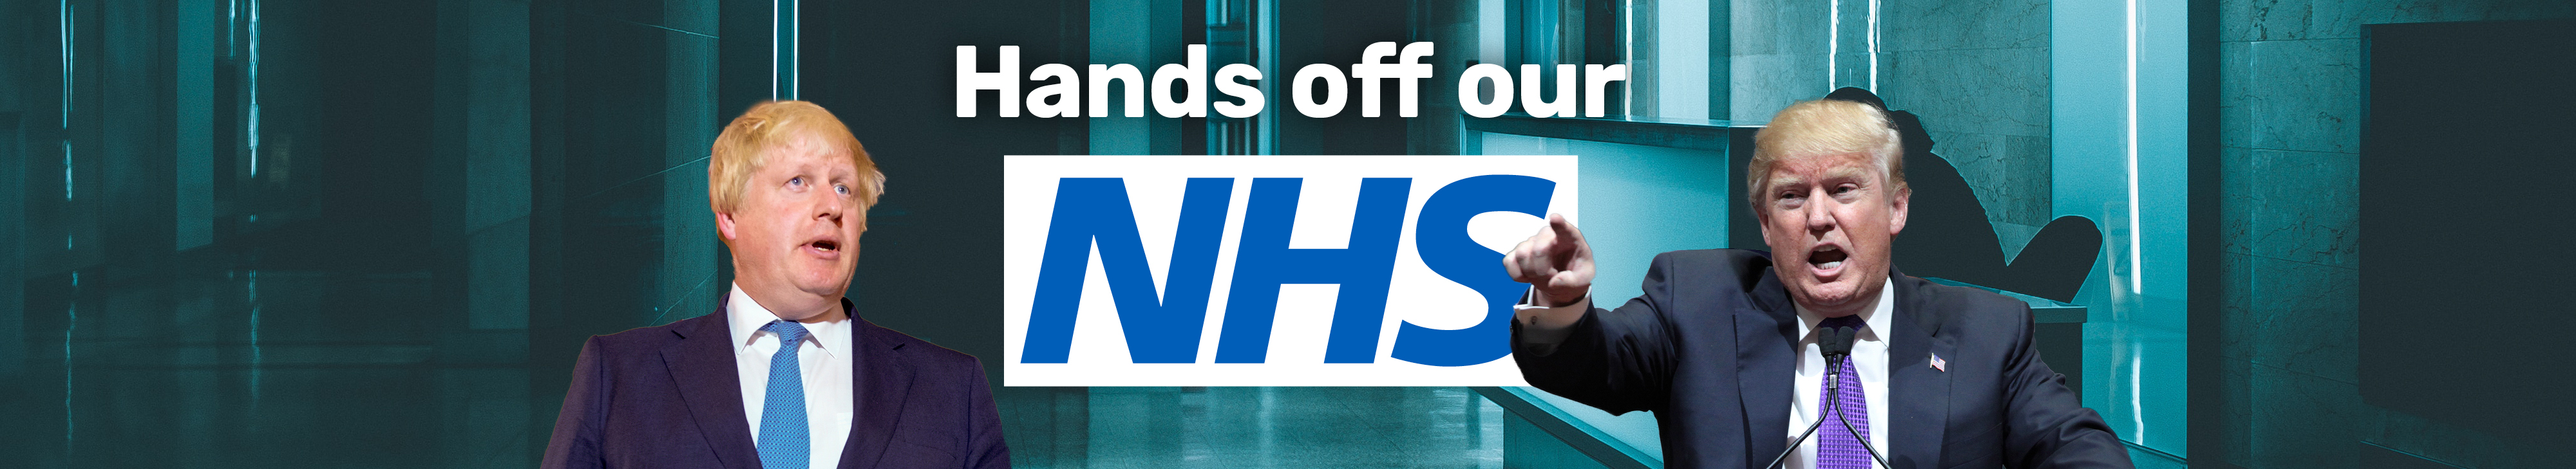 Hands off our NHS